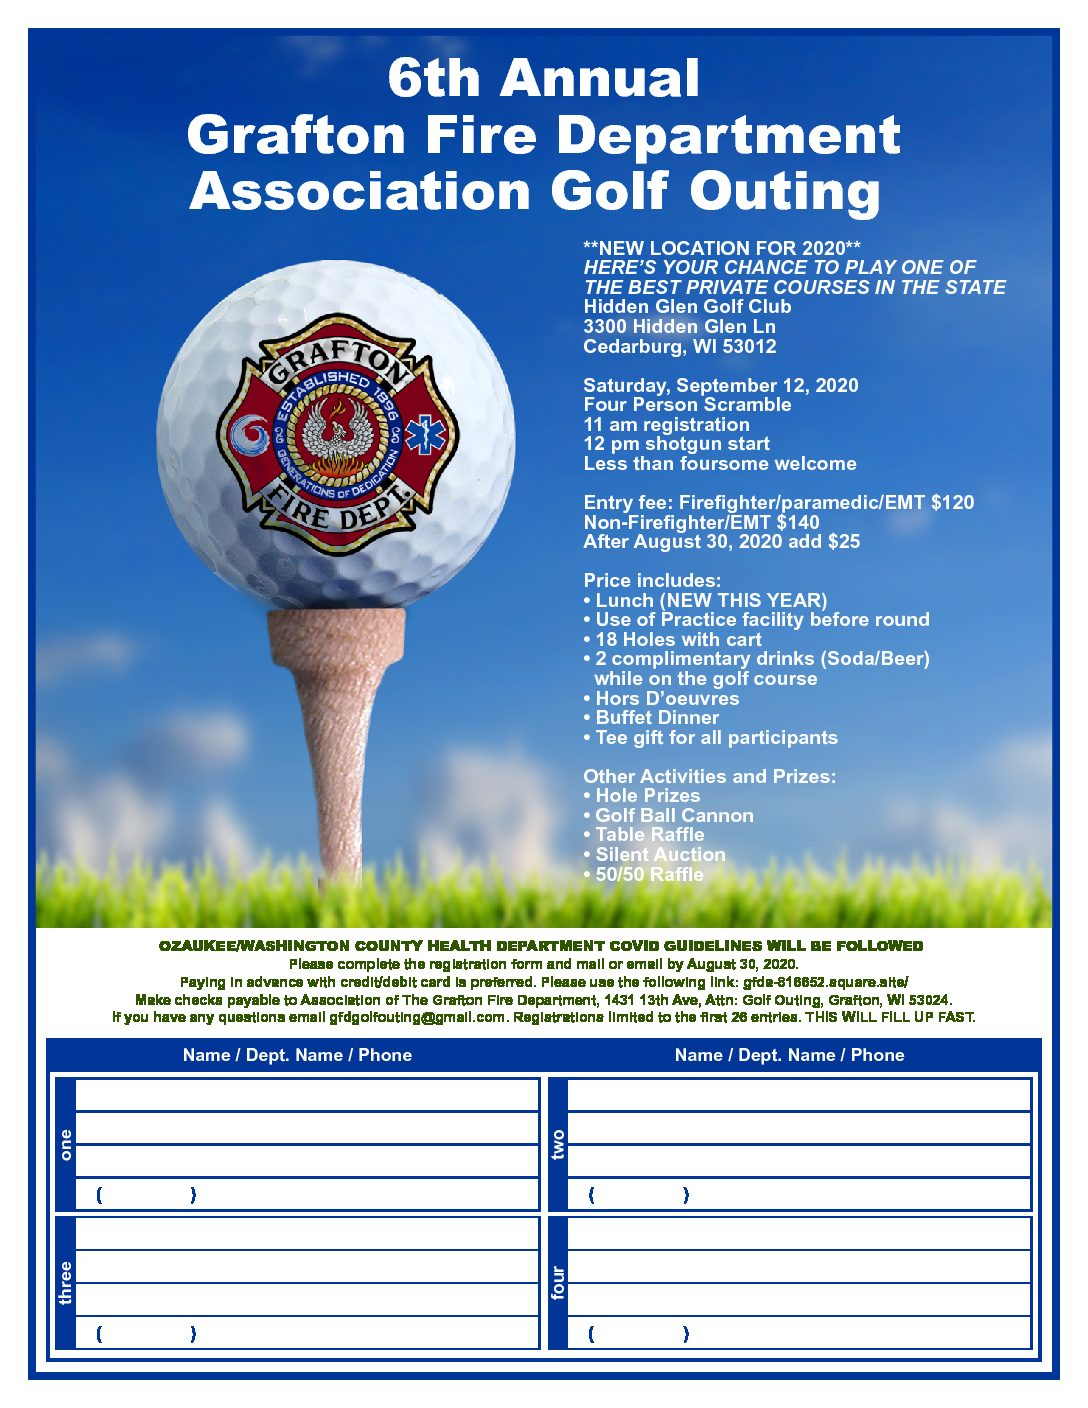 6th Annual  Grafton Fire Department Association Golf Outing